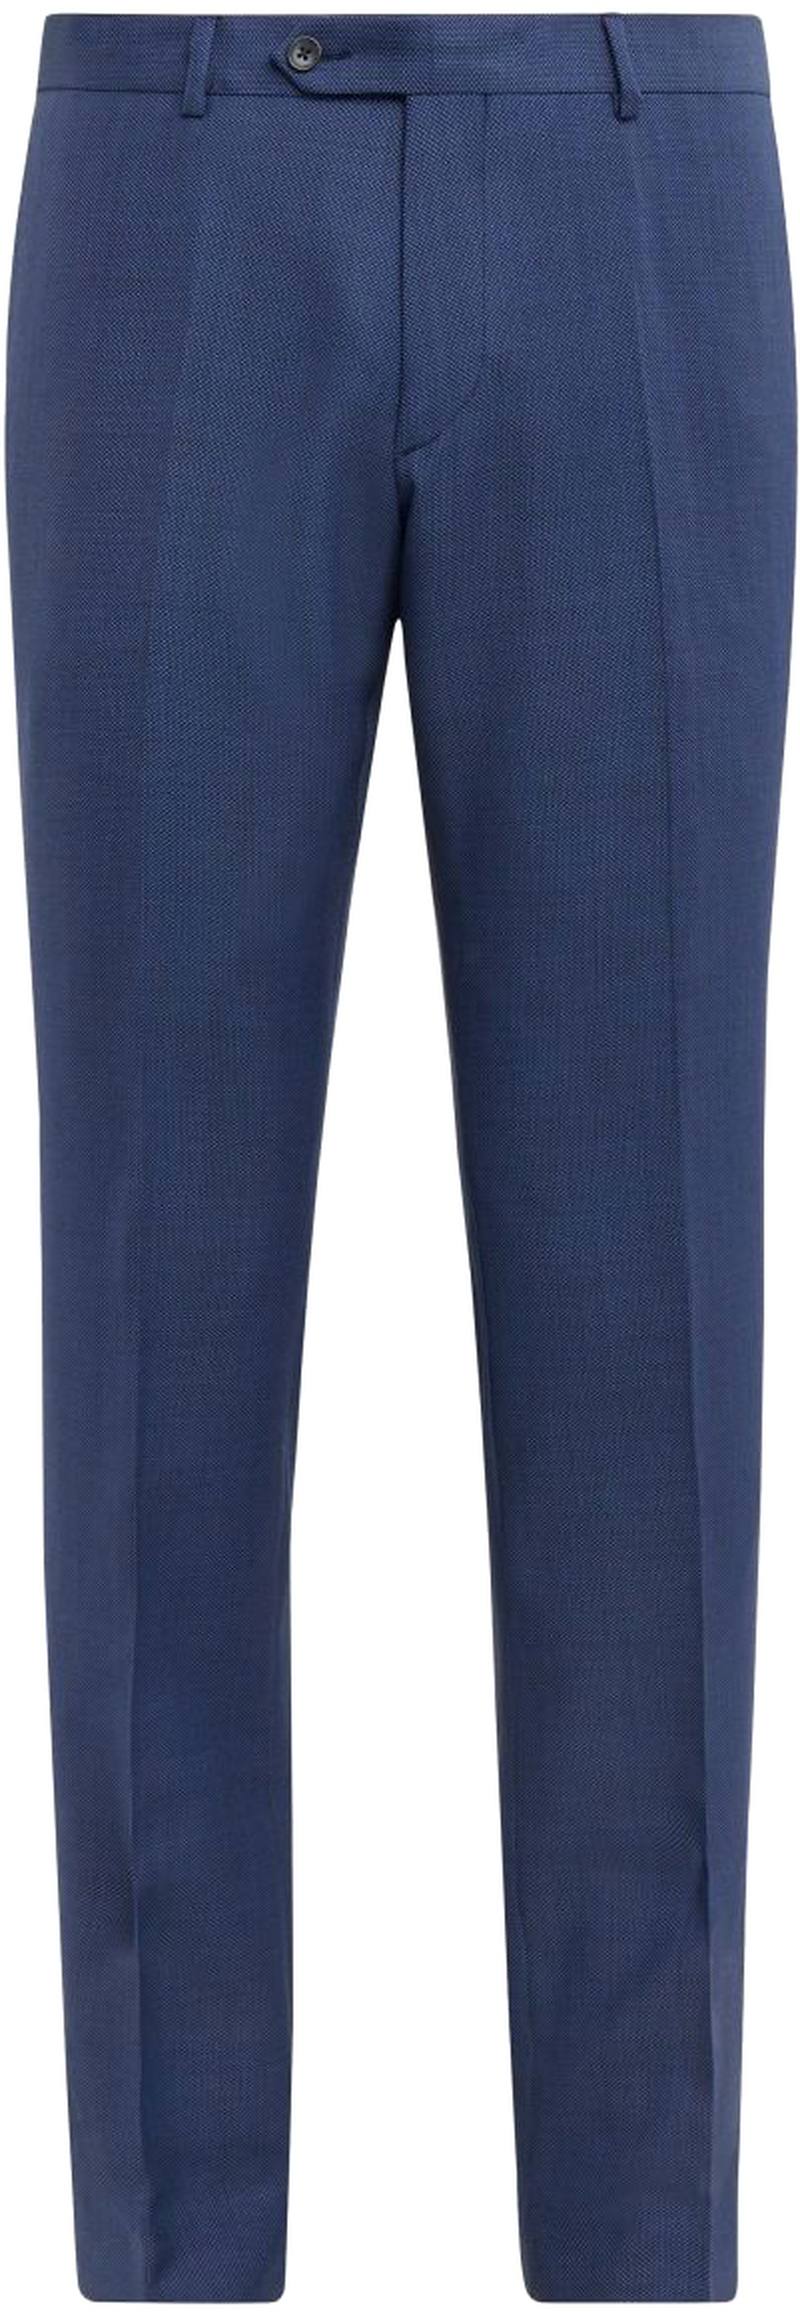 Van Gils Buck Noos Pants Blue photo 0